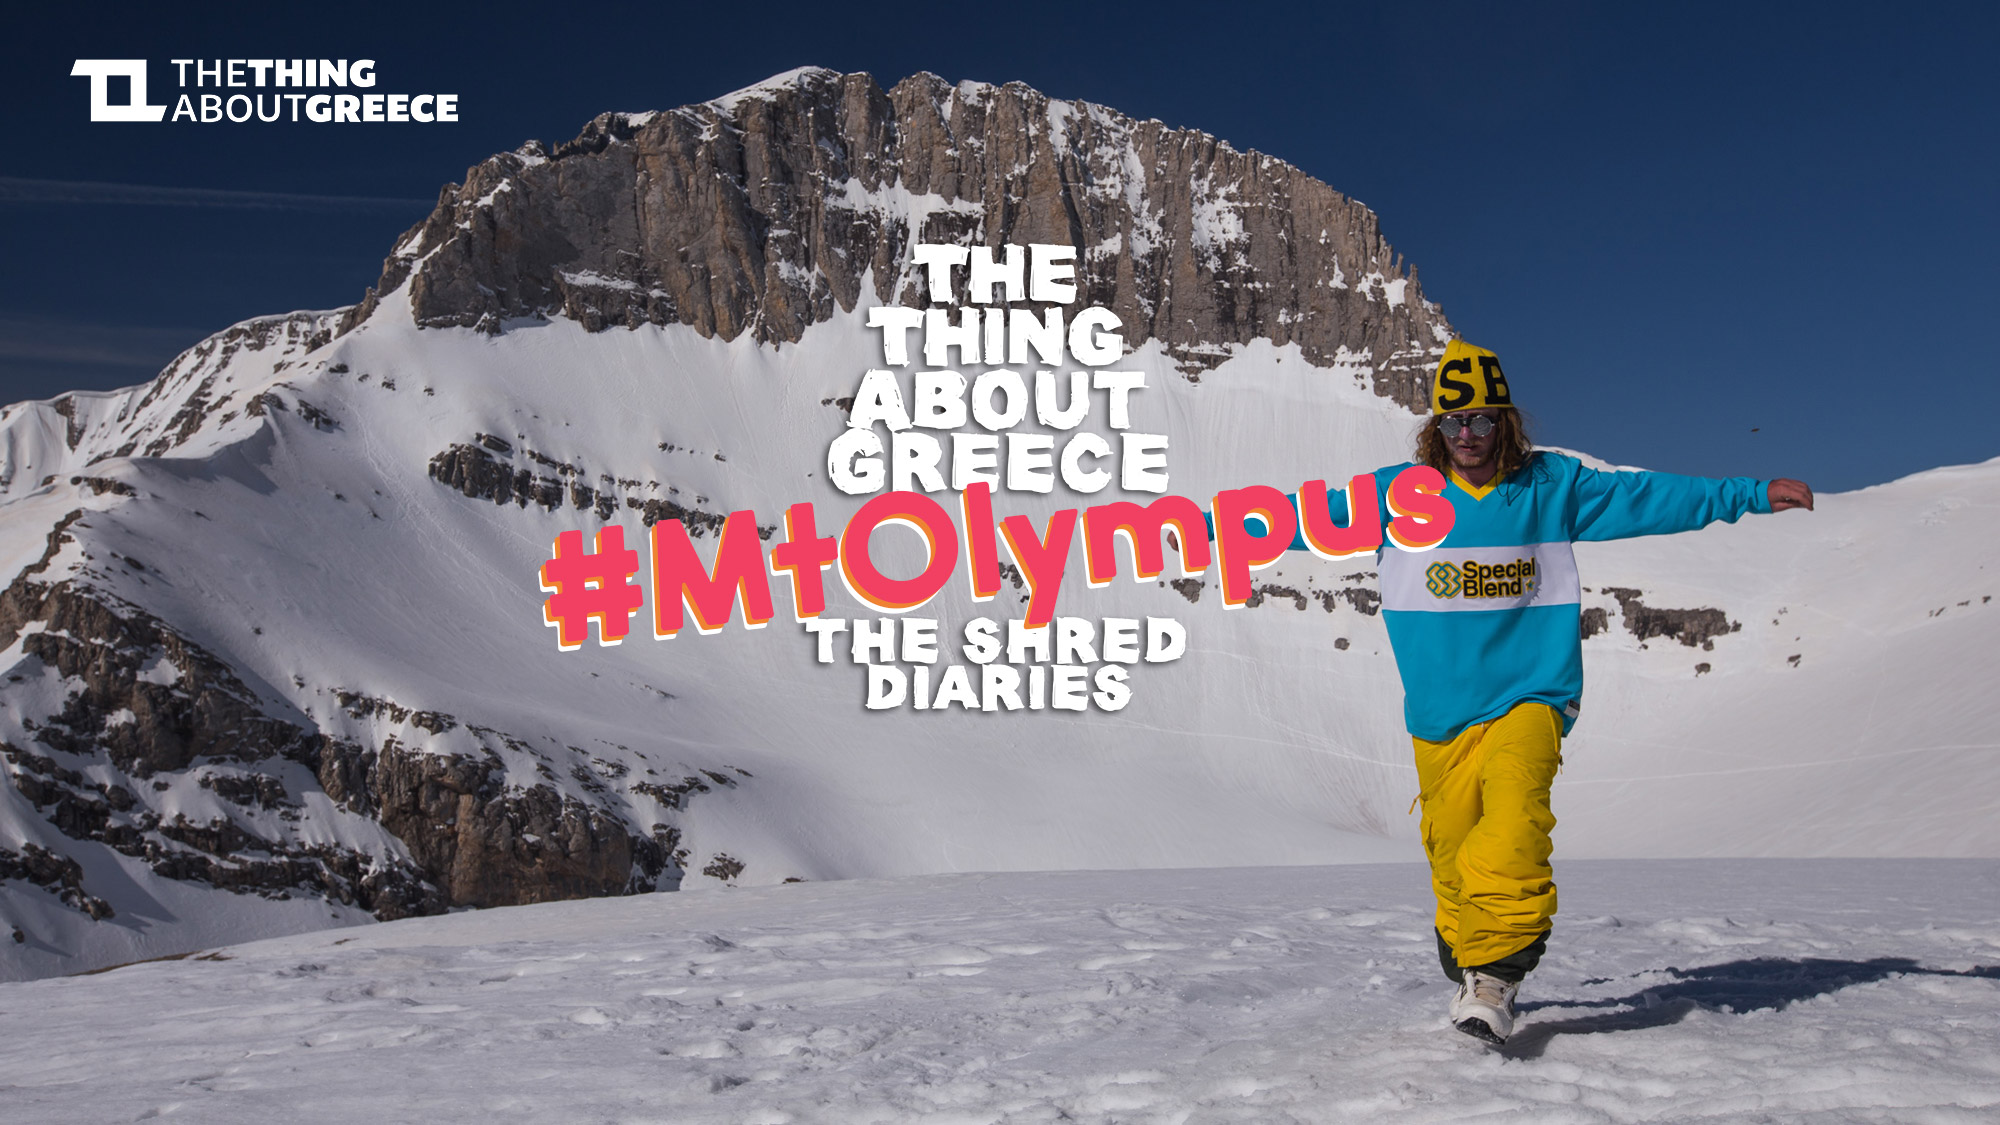 Snowboard Greece – Mt Olympus – Shredding with Gods